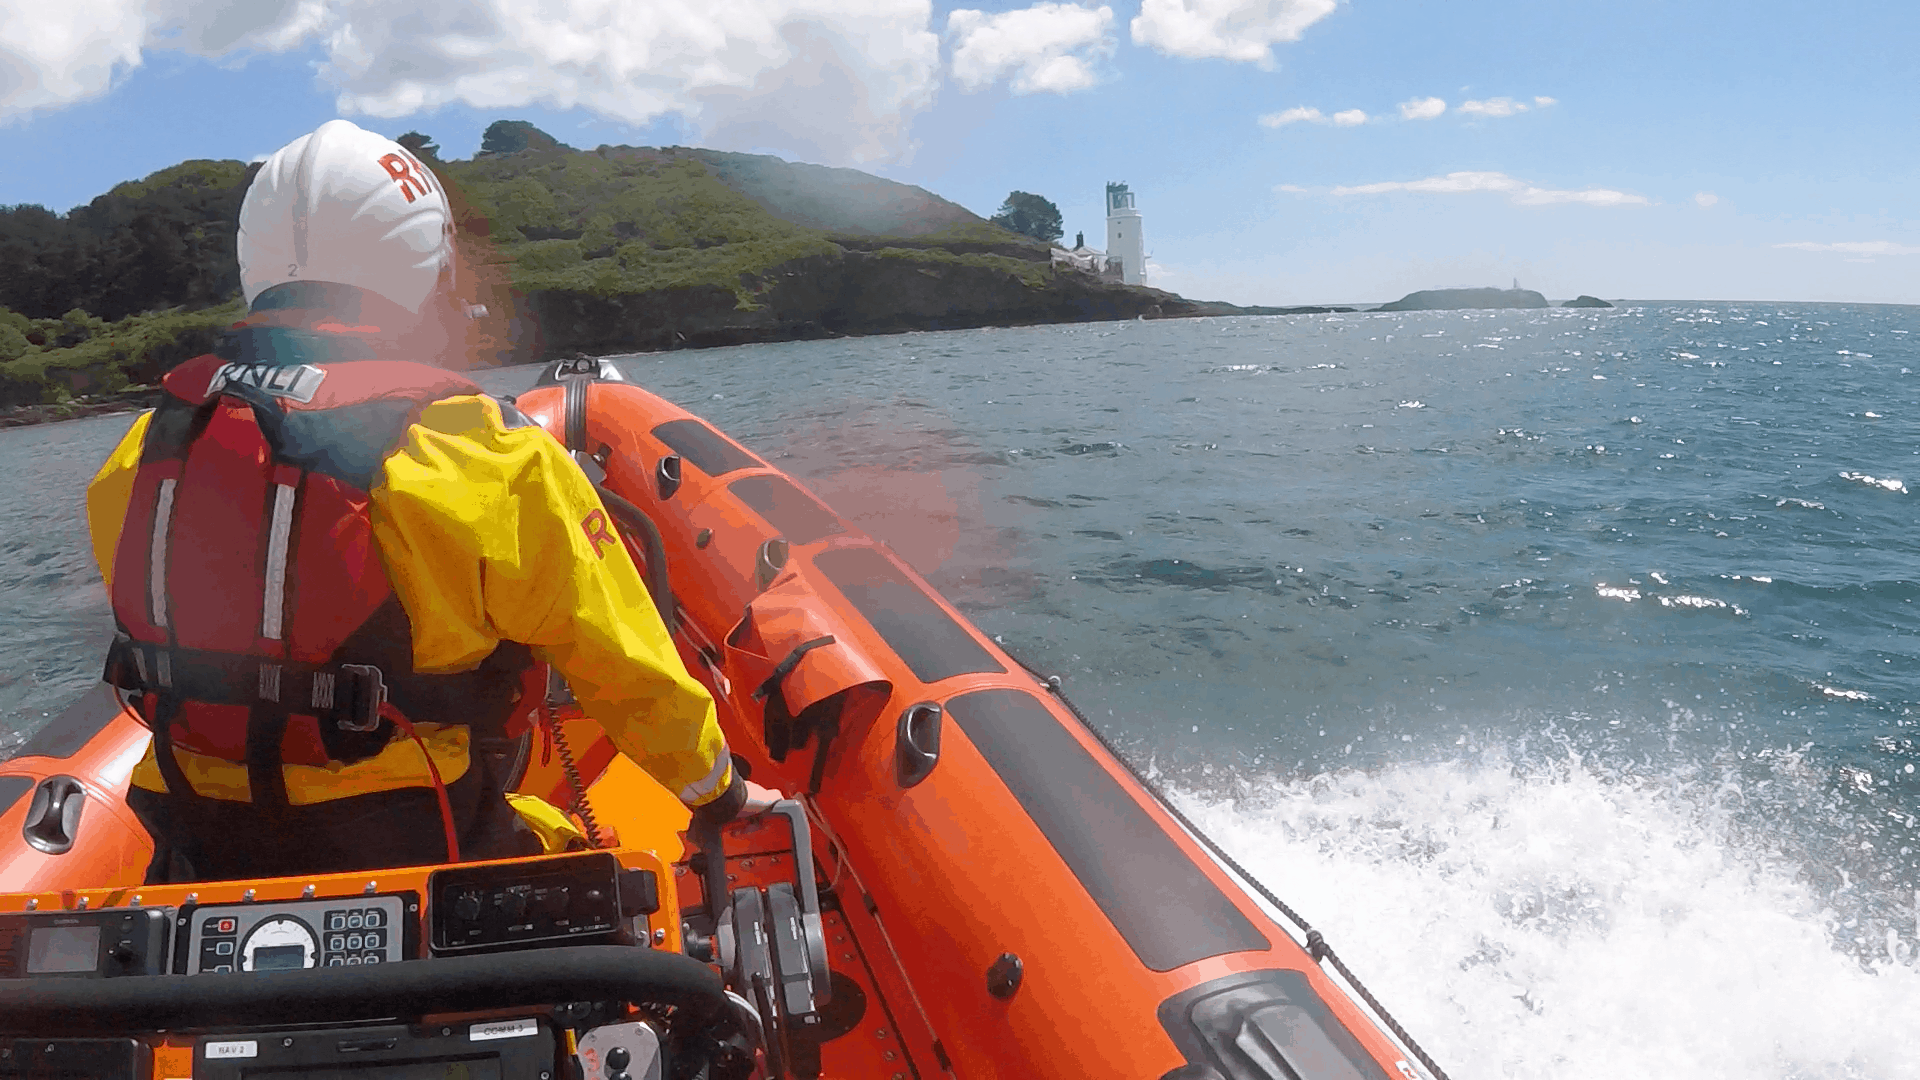 Inshore lifeboat approaching St Anthony Lighthouse